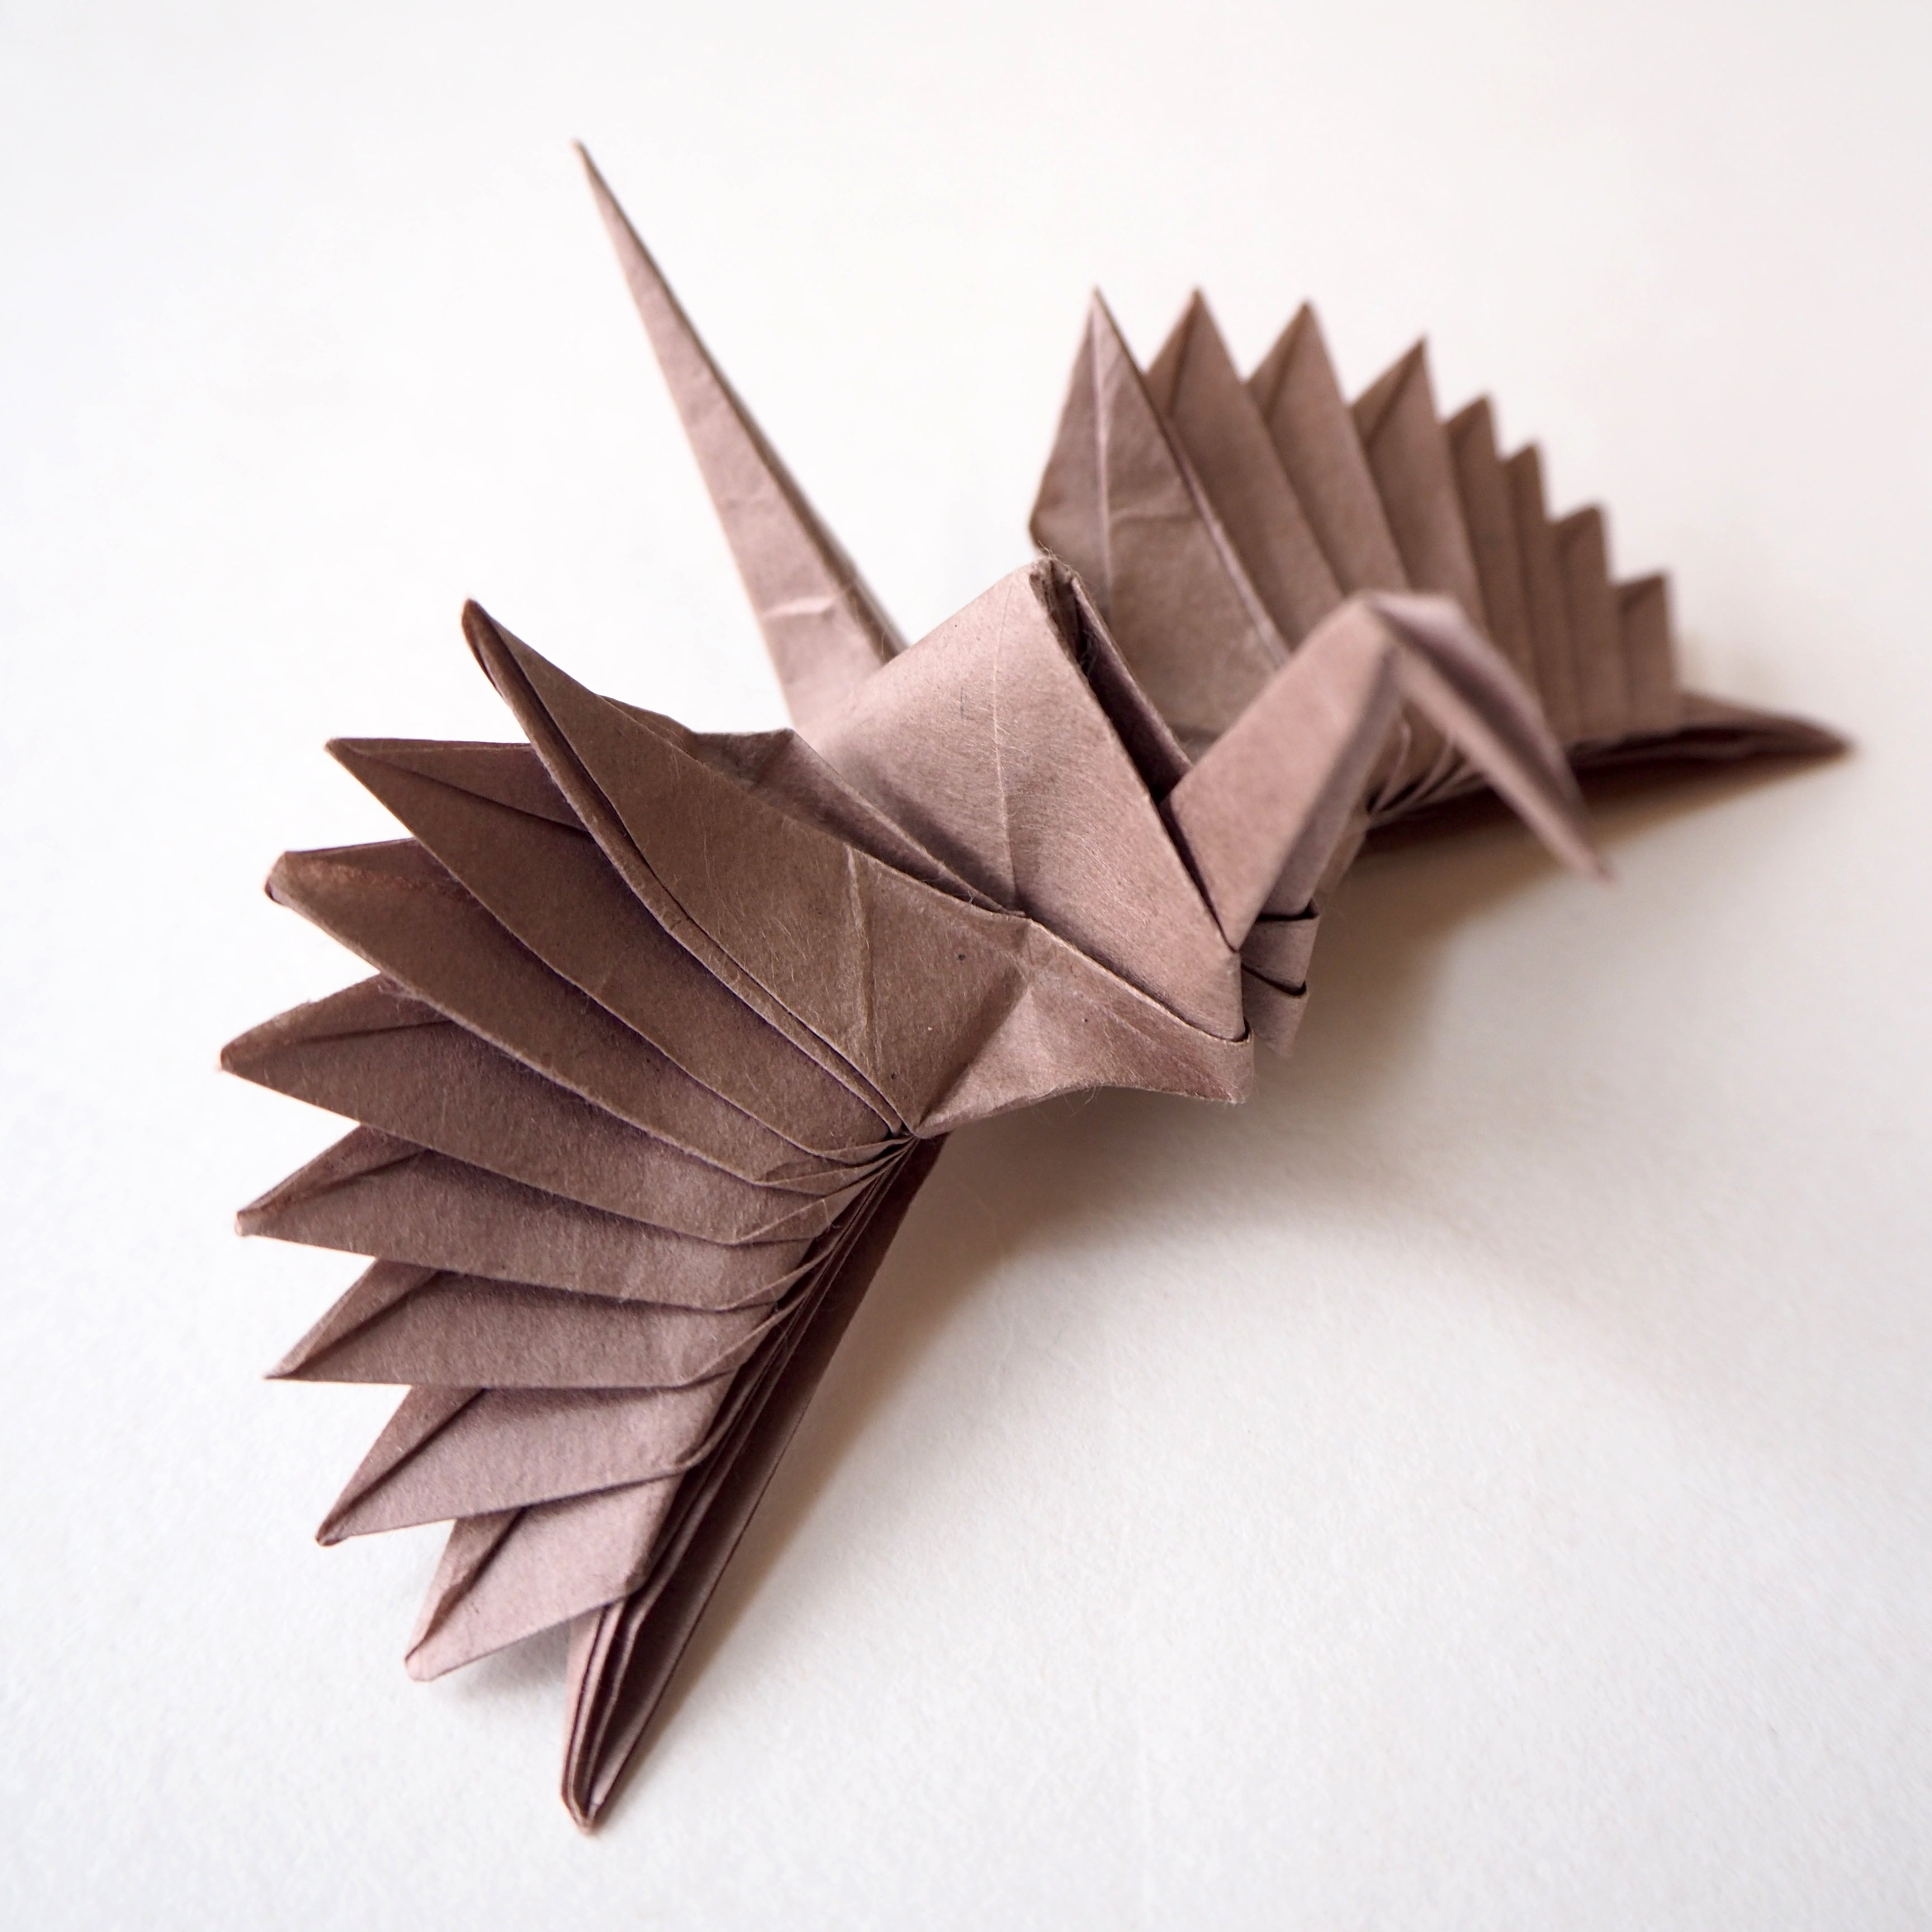 Origami Feathered Crane by Riccardo Foschi